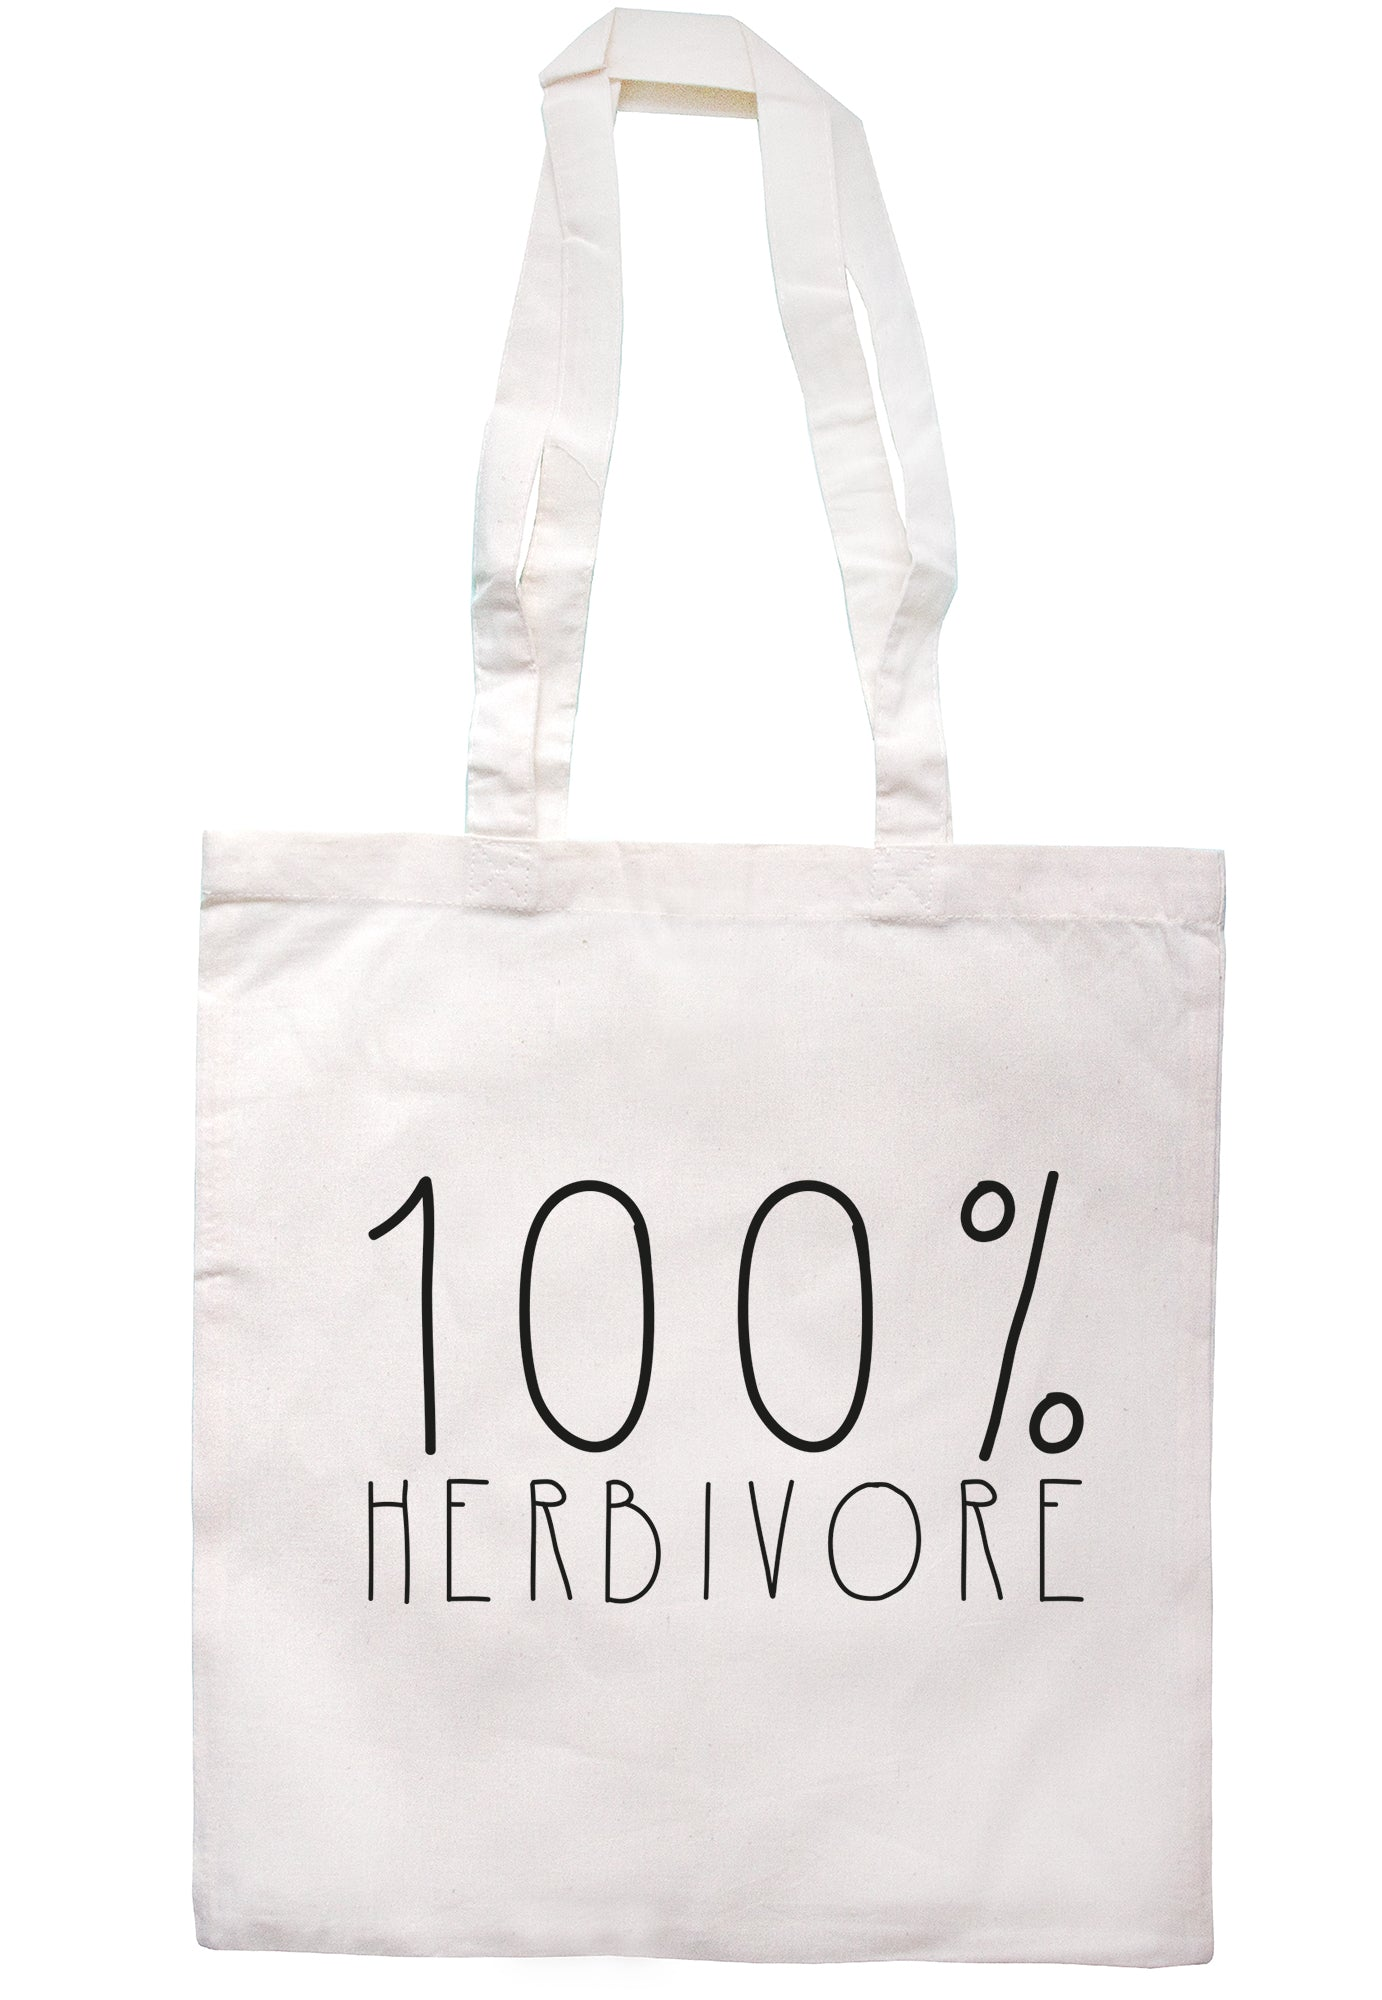 100% Herbivore Tote Bag TB1709 - Illustrated Identity Ltd.